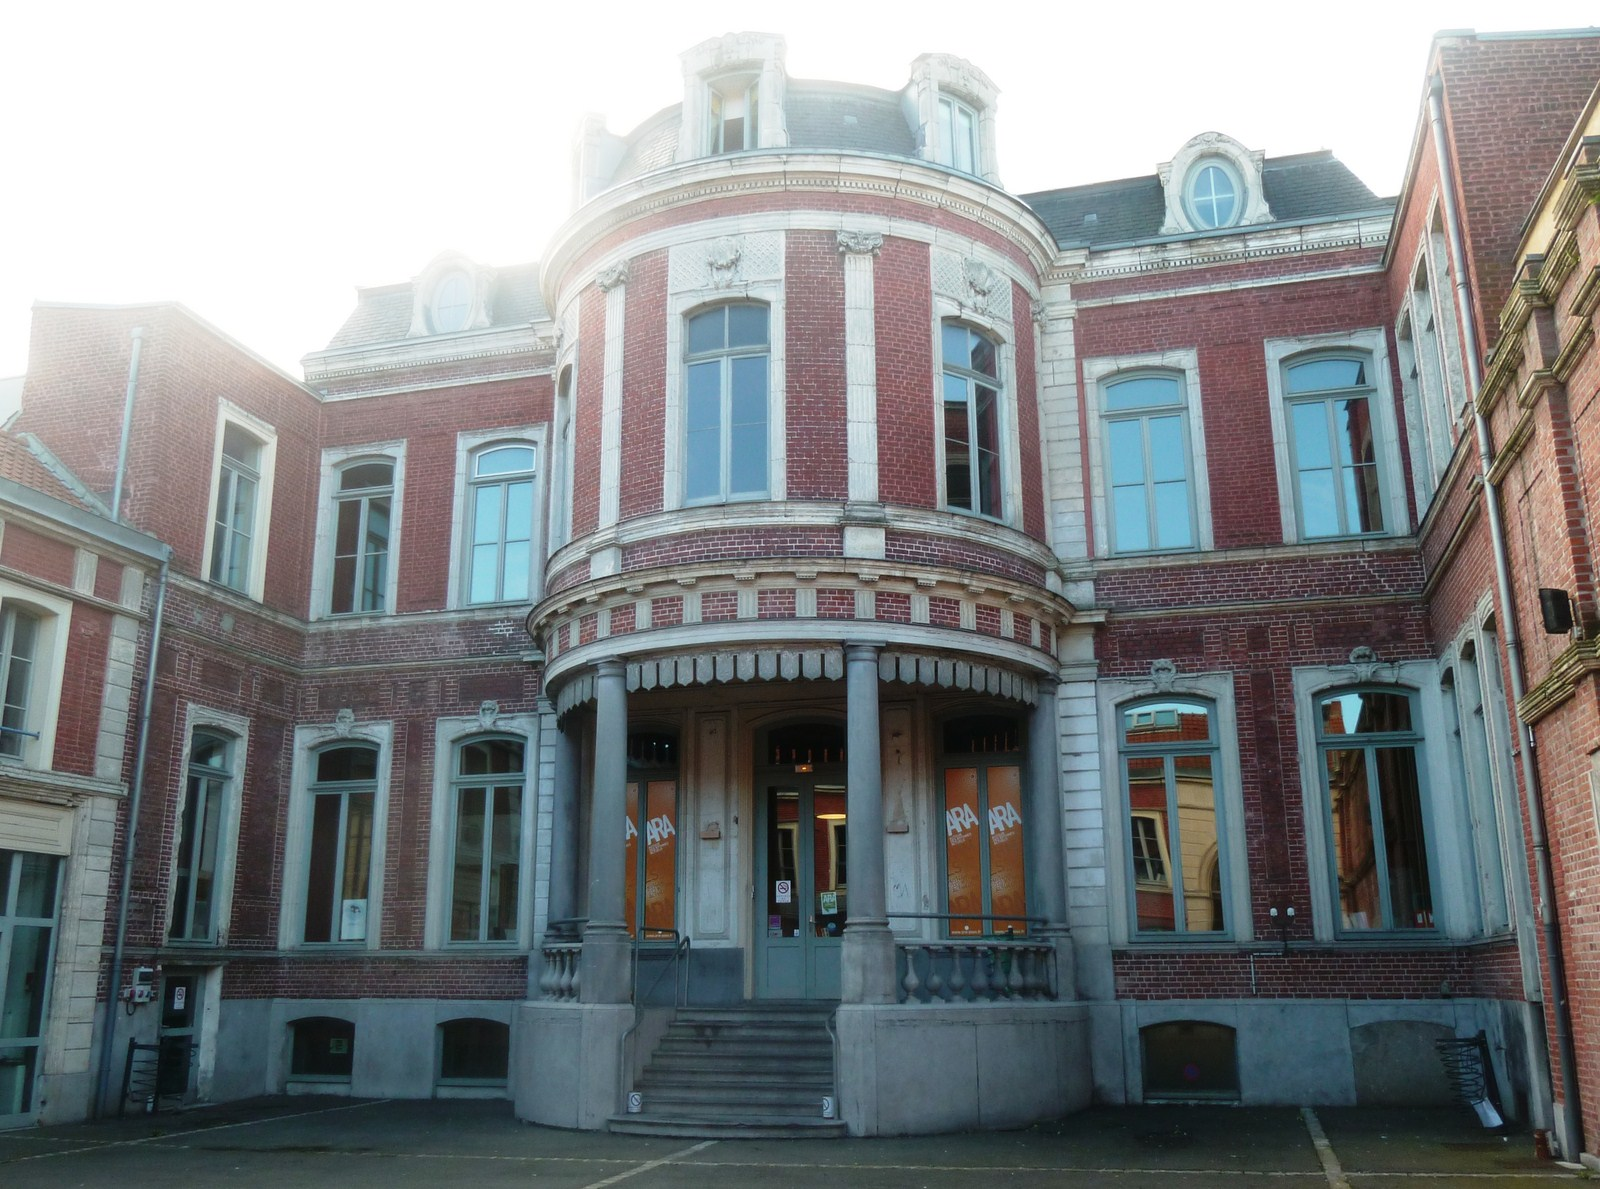 Hotel Amedee-Prouvost-Lepoutre